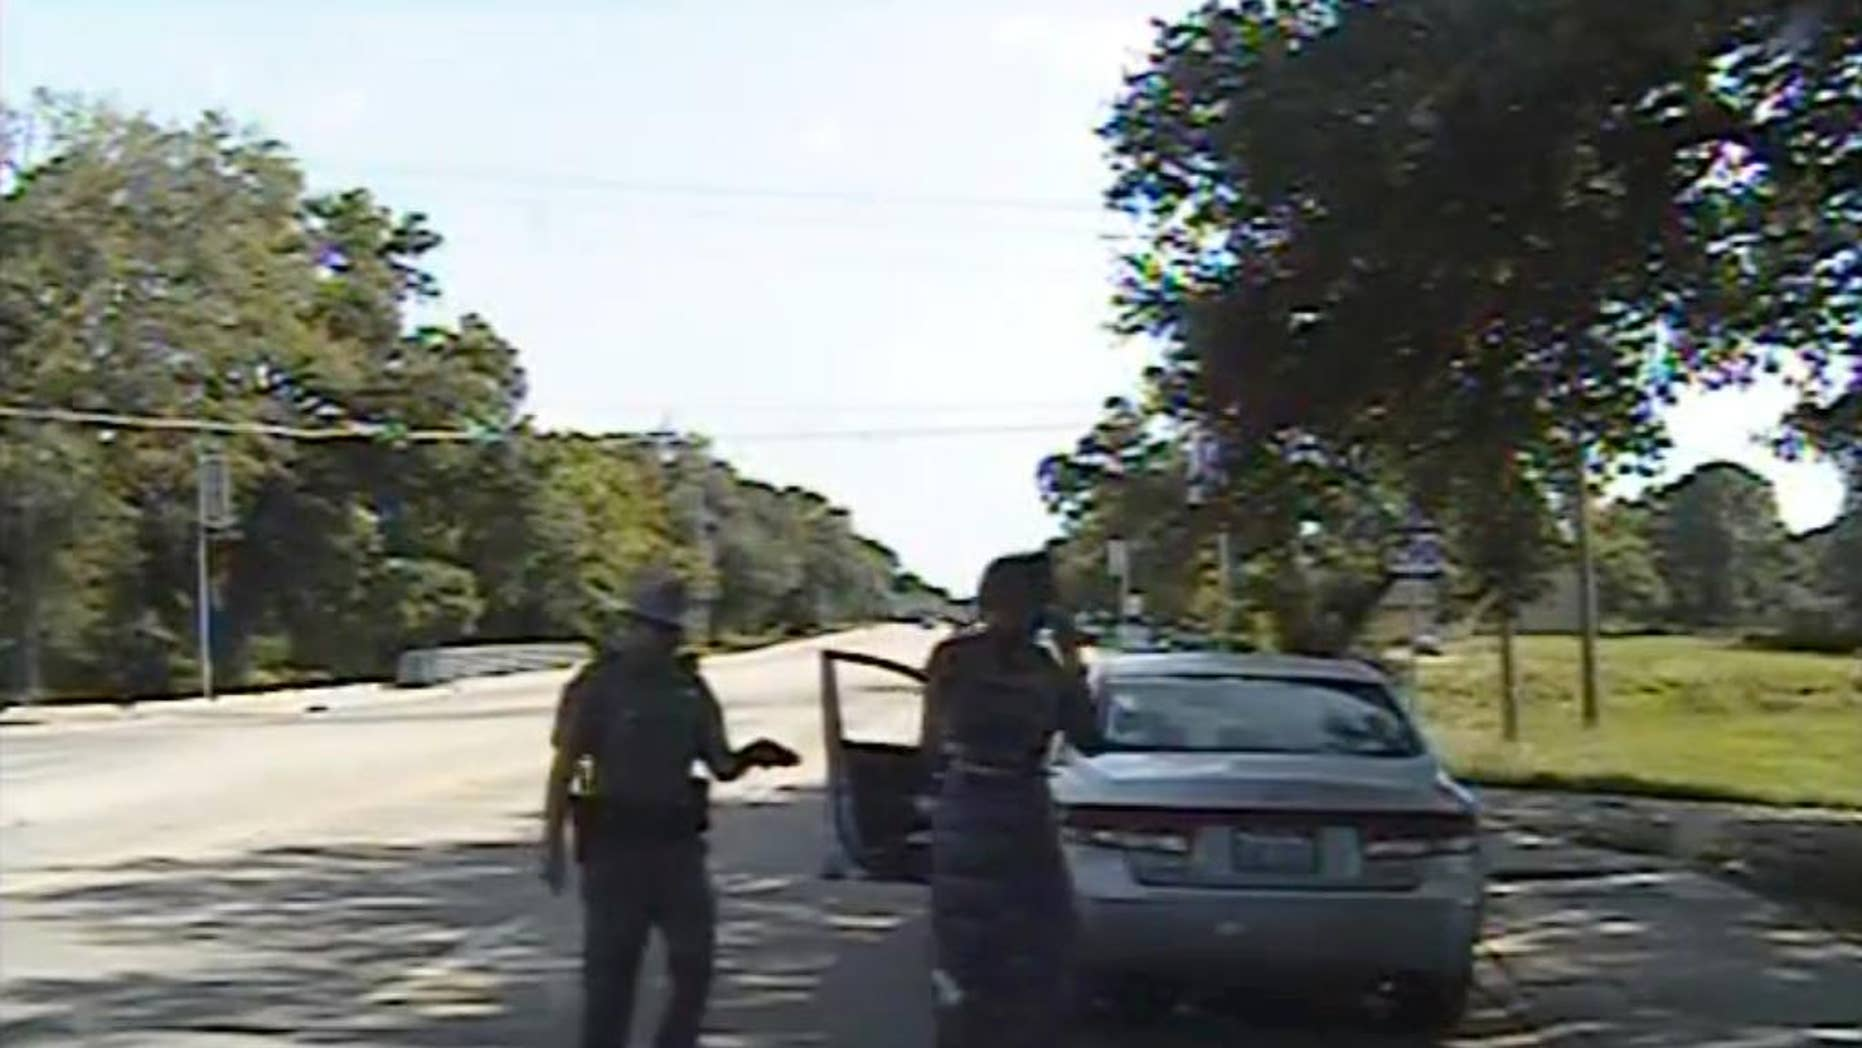 """FILE- In this July 10, 2015 file frame from dashcam video provided by the Texas Department of Public Safety, trooper Brian Encinia arrests Sandra Bland after she became combative during a routine traffic stop in Waller County, Texas. Encinia, a Texas trooper who arrested Bland after a confrontation that began with a traffic stop, had been cautioned about """"unprofessional conduct"""" in a 2014 incident while he was still a probationary trooper. (Texas Department of Public Safety via AP, File)"""